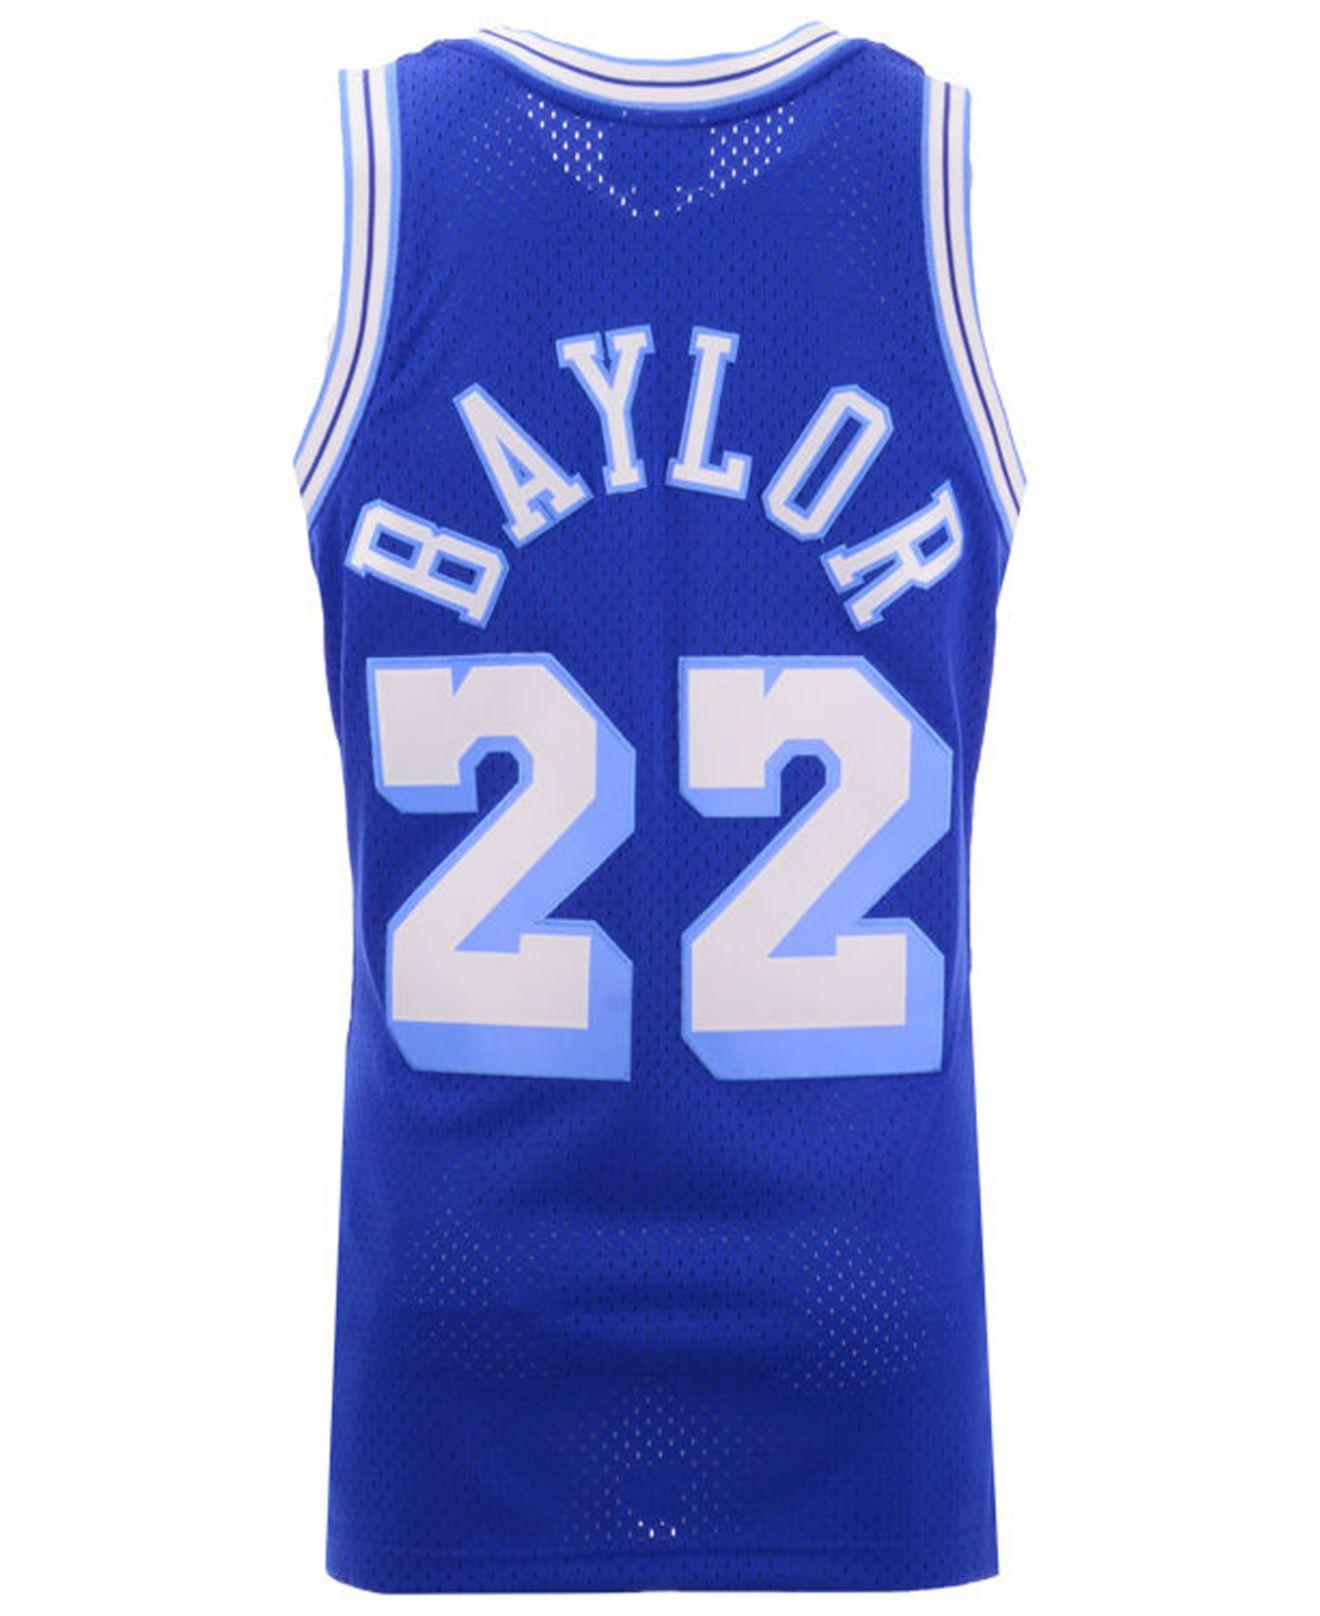 198fa91a439a Lyst - Mitchell   Ness Elgin Baylor Los Angeles Lakers Hardwood Classic Swingman  Jersey in Blue for Men